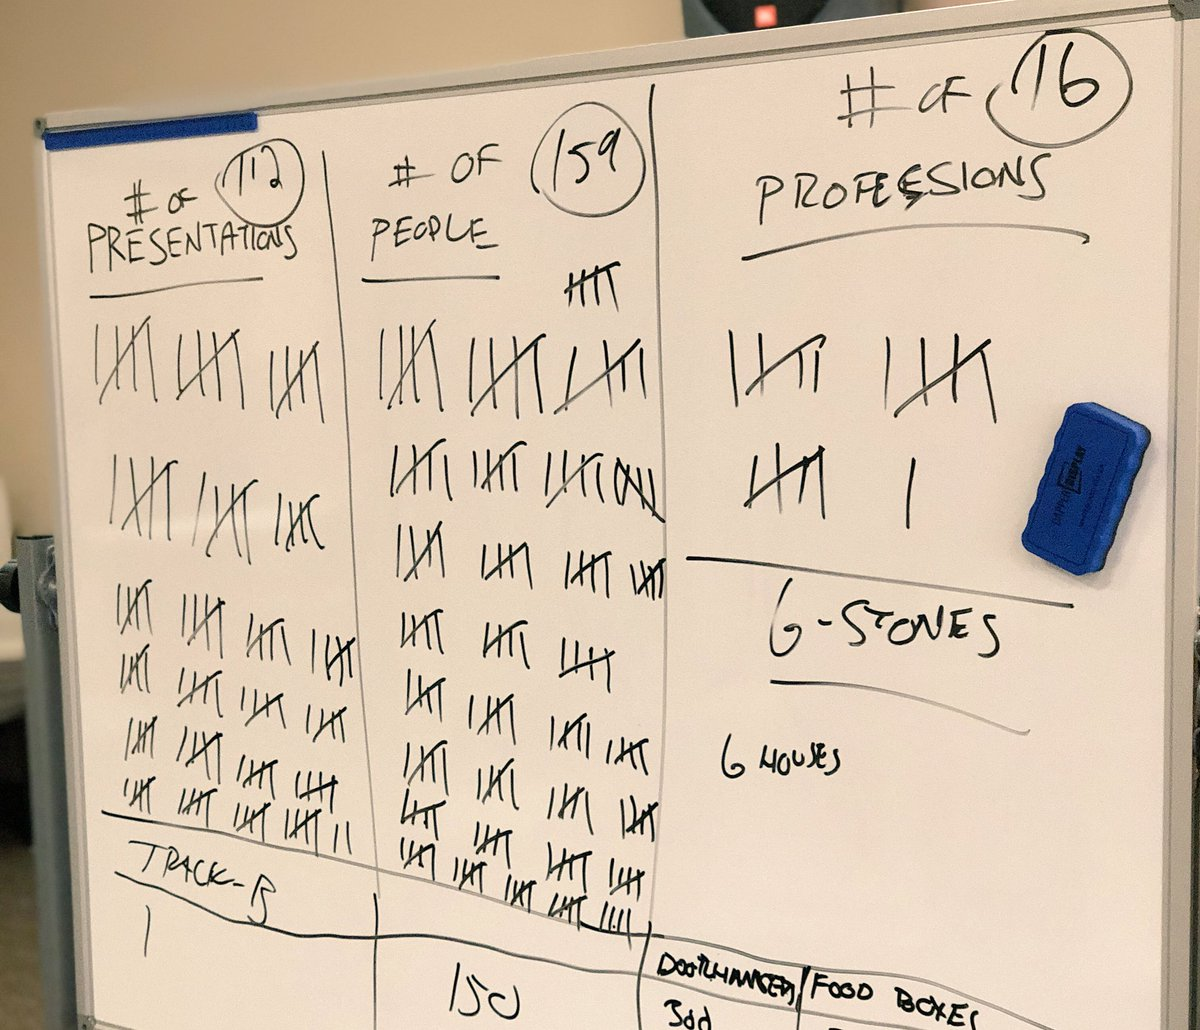 Final stats are in for #crossover18 at Tate Springs. 112 gospel presentations, 309 people who heard, and 16 professions of faith!